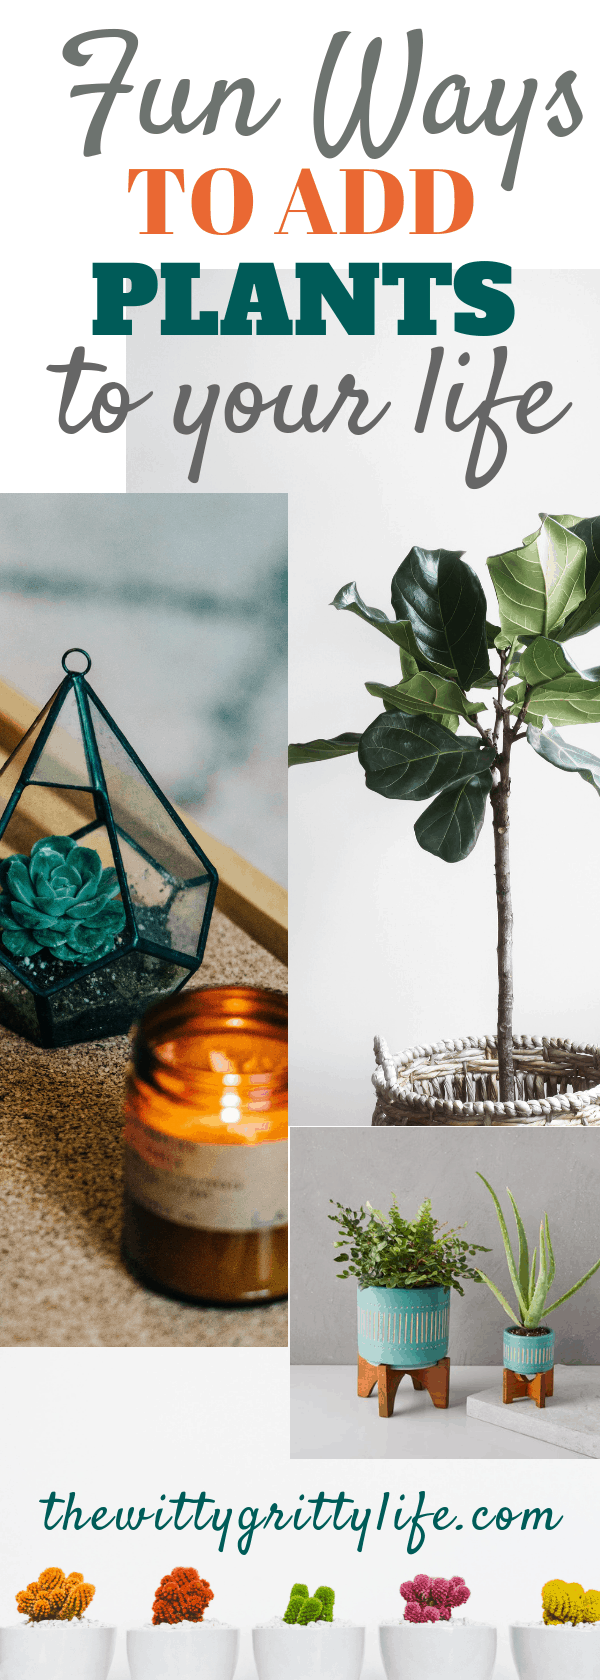 Plants are an important part of your indoor decor. You don't have to have a green thumb to incorporate them to create an indoor landscape. Have fun adding greenery and improve your overall quality of life at the same time!